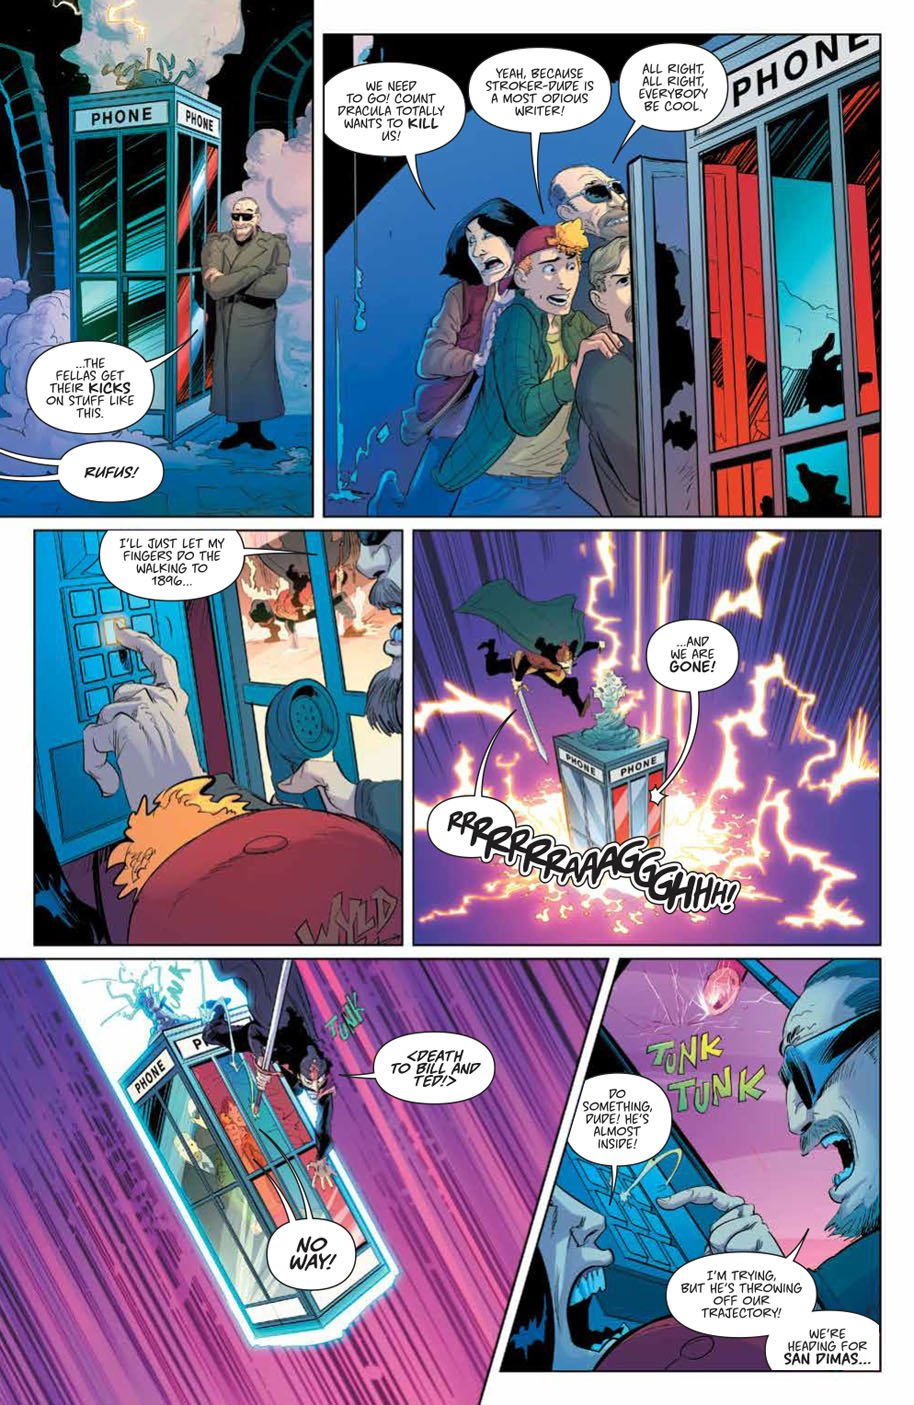 Bill & Ted Save the Universe 1 page 4